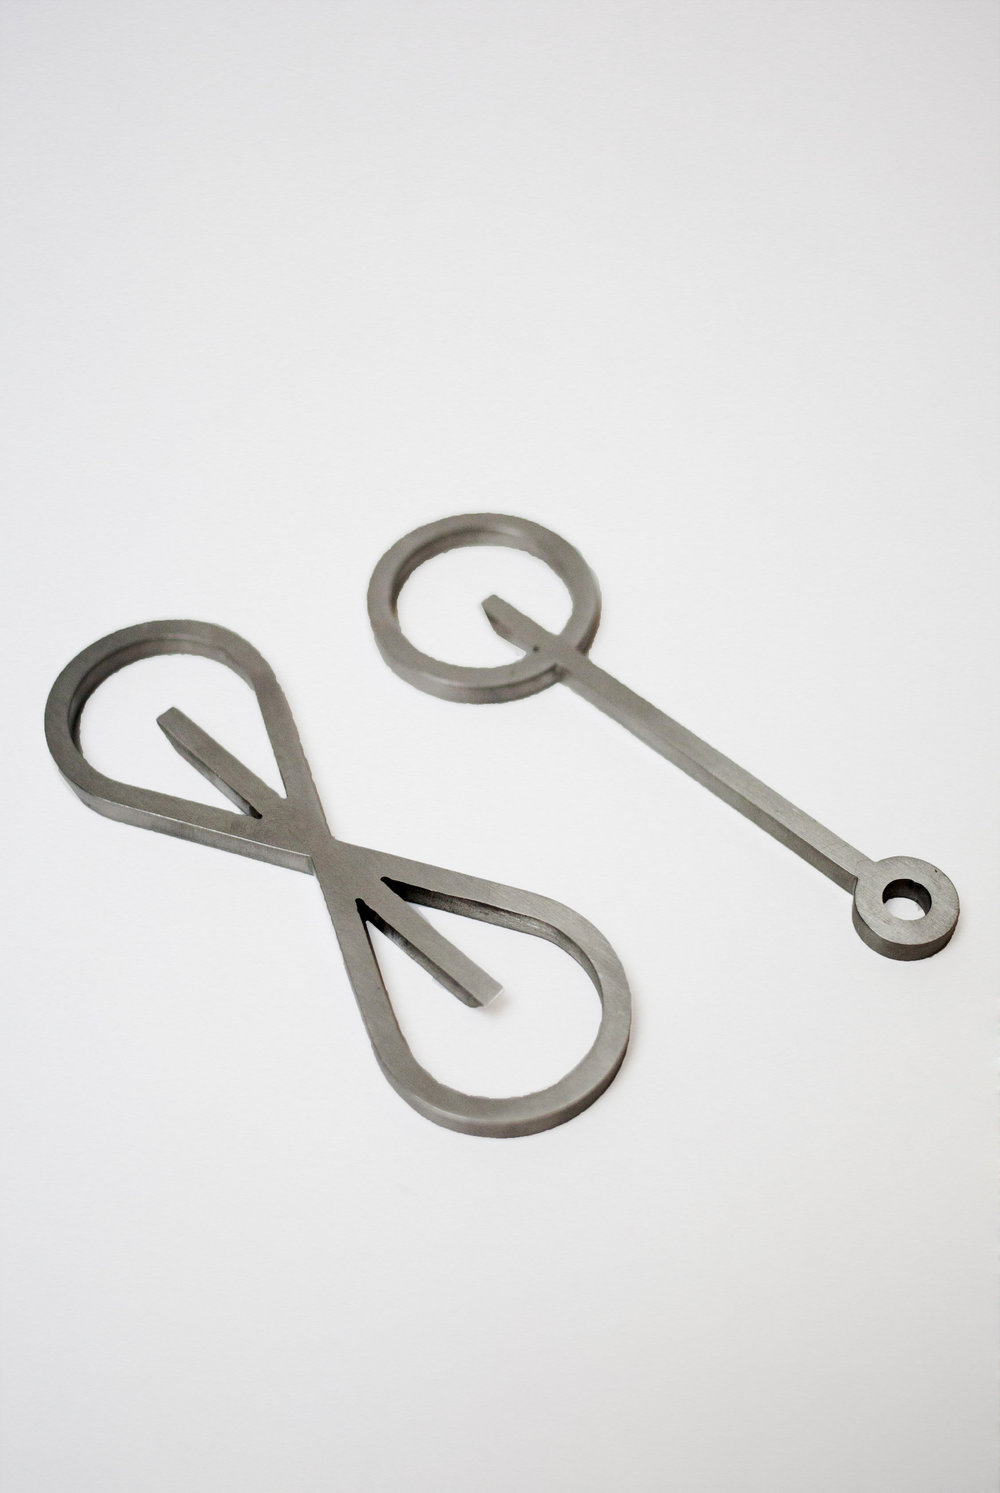 001 Bottle Opener designed by Orphan Work